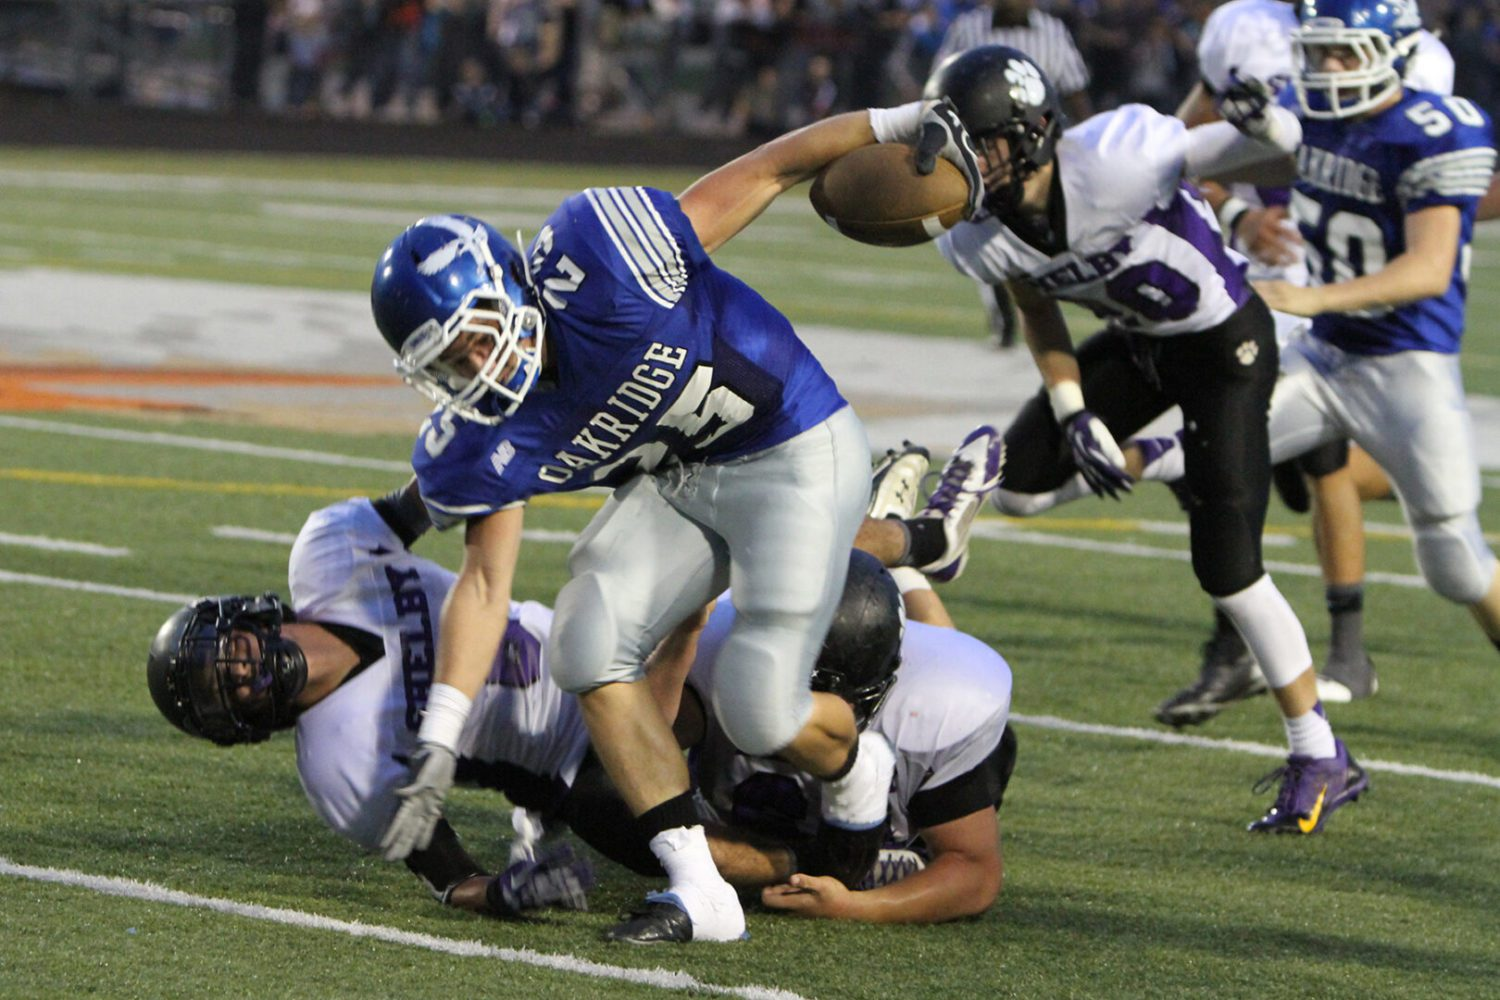 Hook-and-ladder play works as Shelby pulls out dramatic 22-19 victory over Oakridge [video]